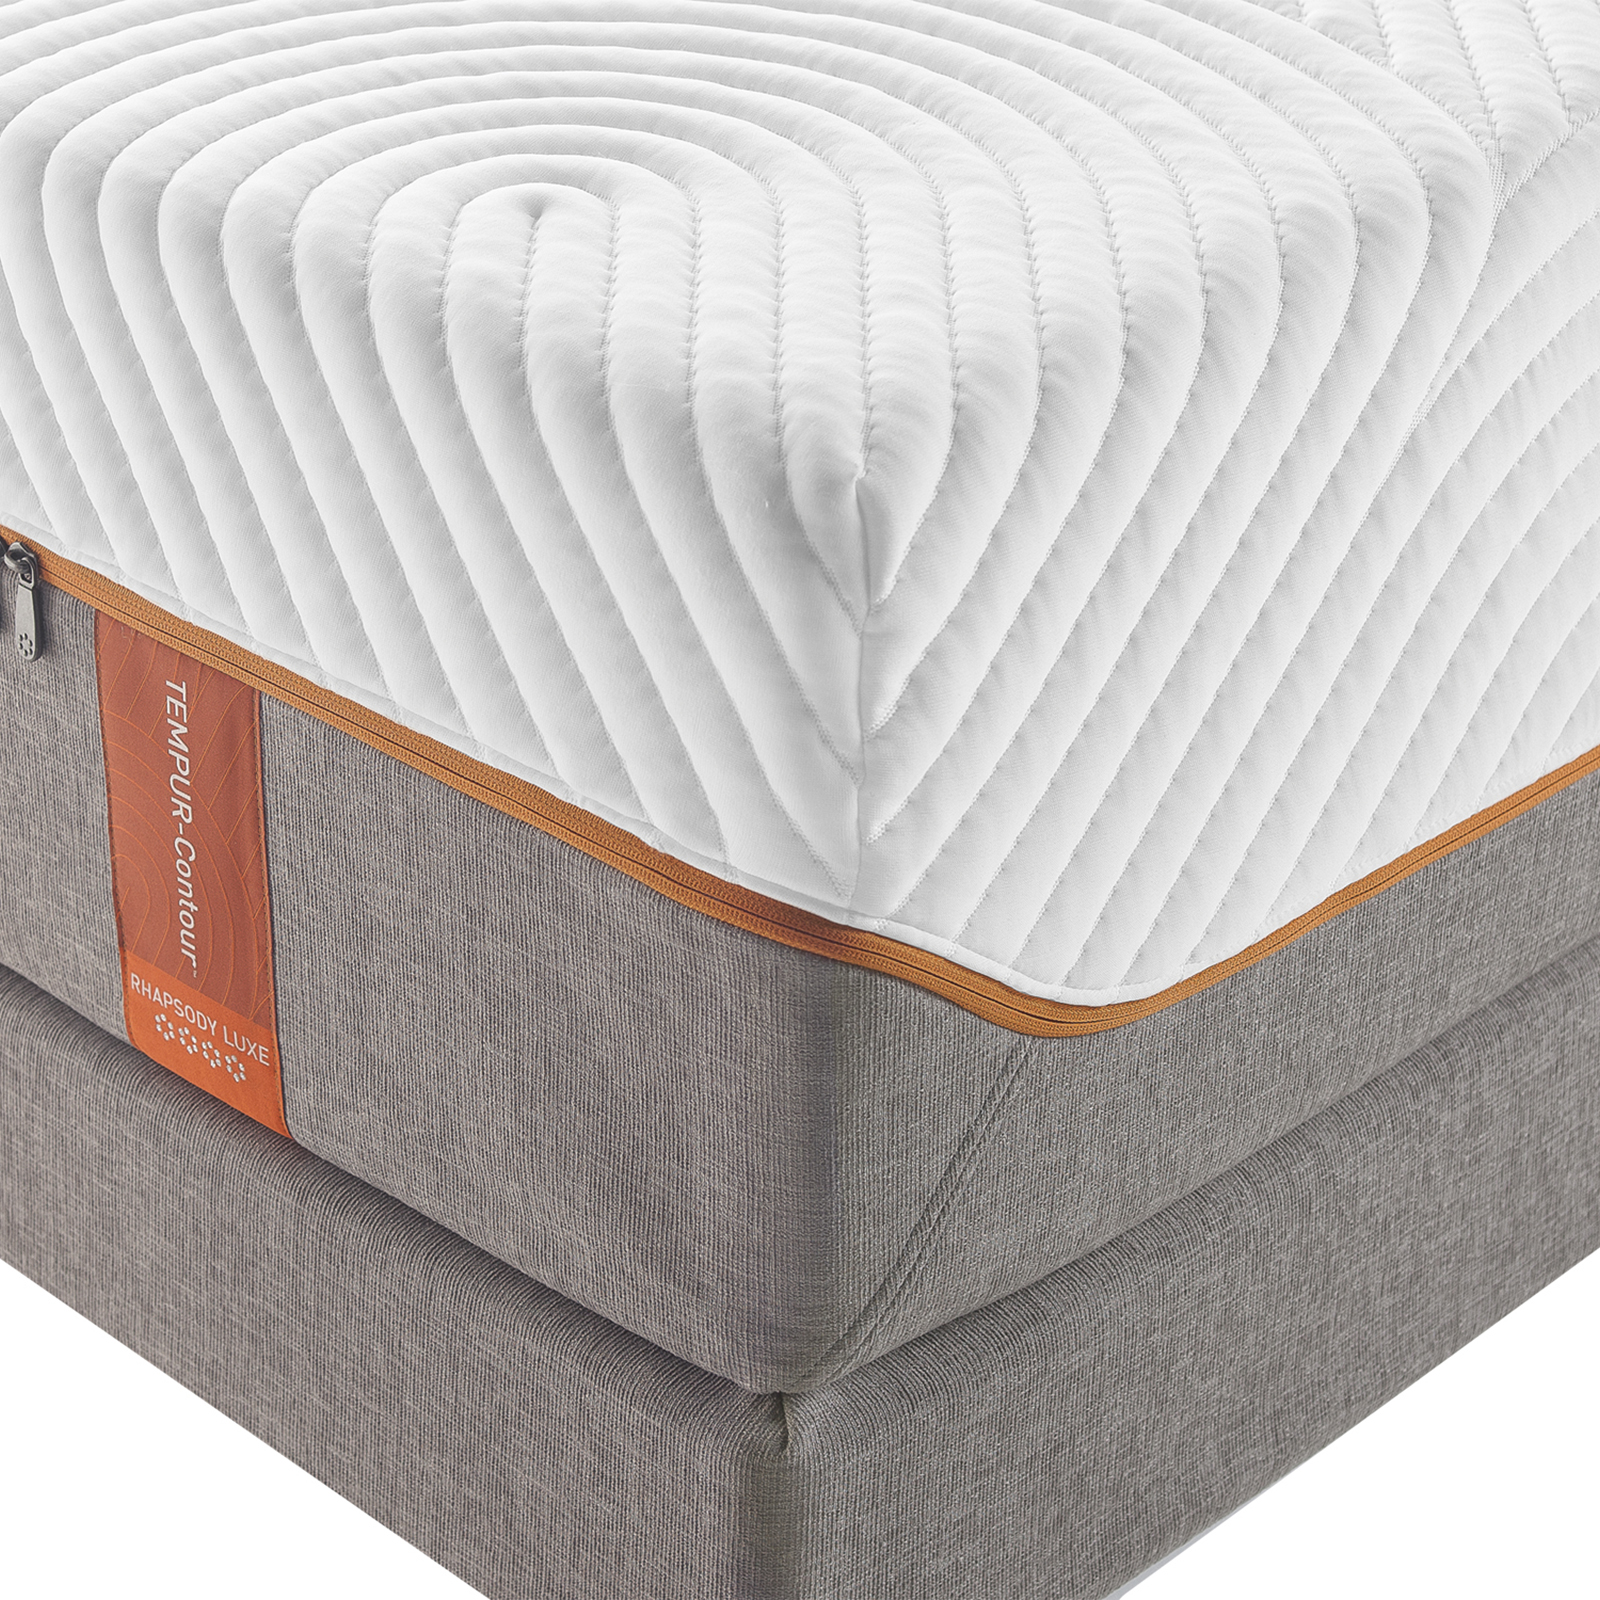 Tempurpedic Mattress King Size Tempur Pedic Tempur Contour Rhapsody Luxe King Mattress